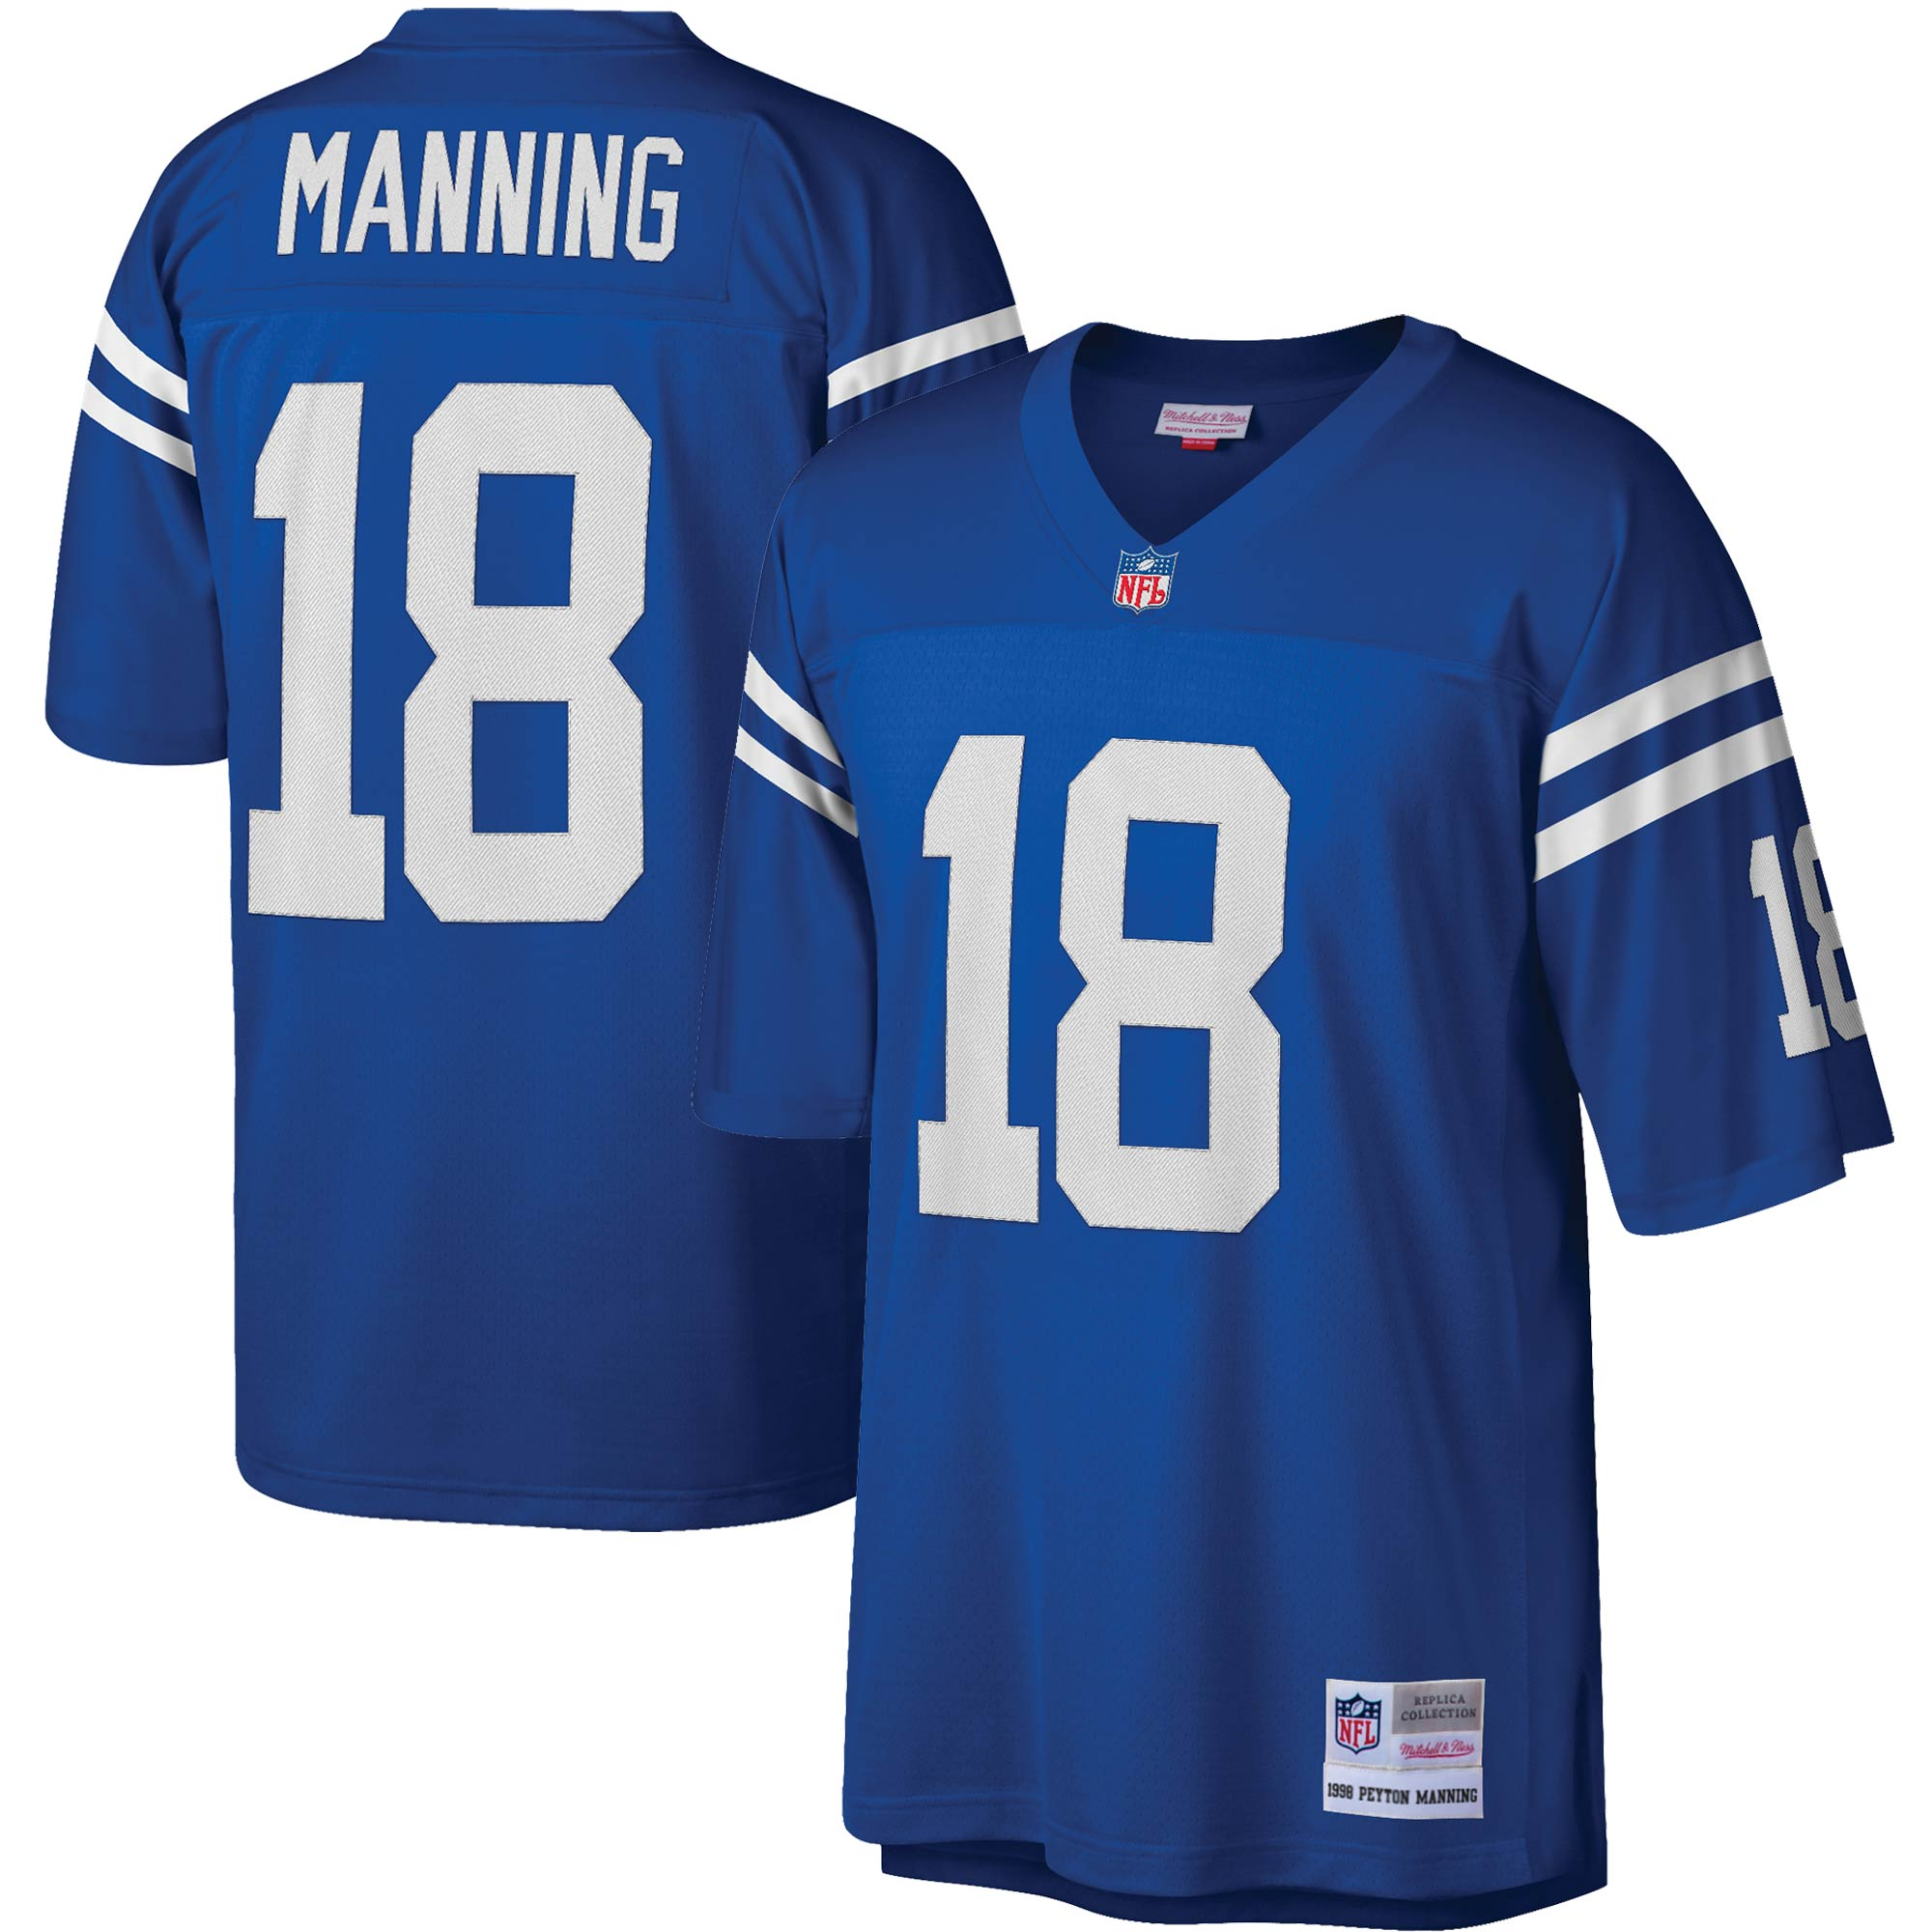 Peyton Manning Indianapolis Colts Mitchell & Ness Legacy Replica Jersey - Royal